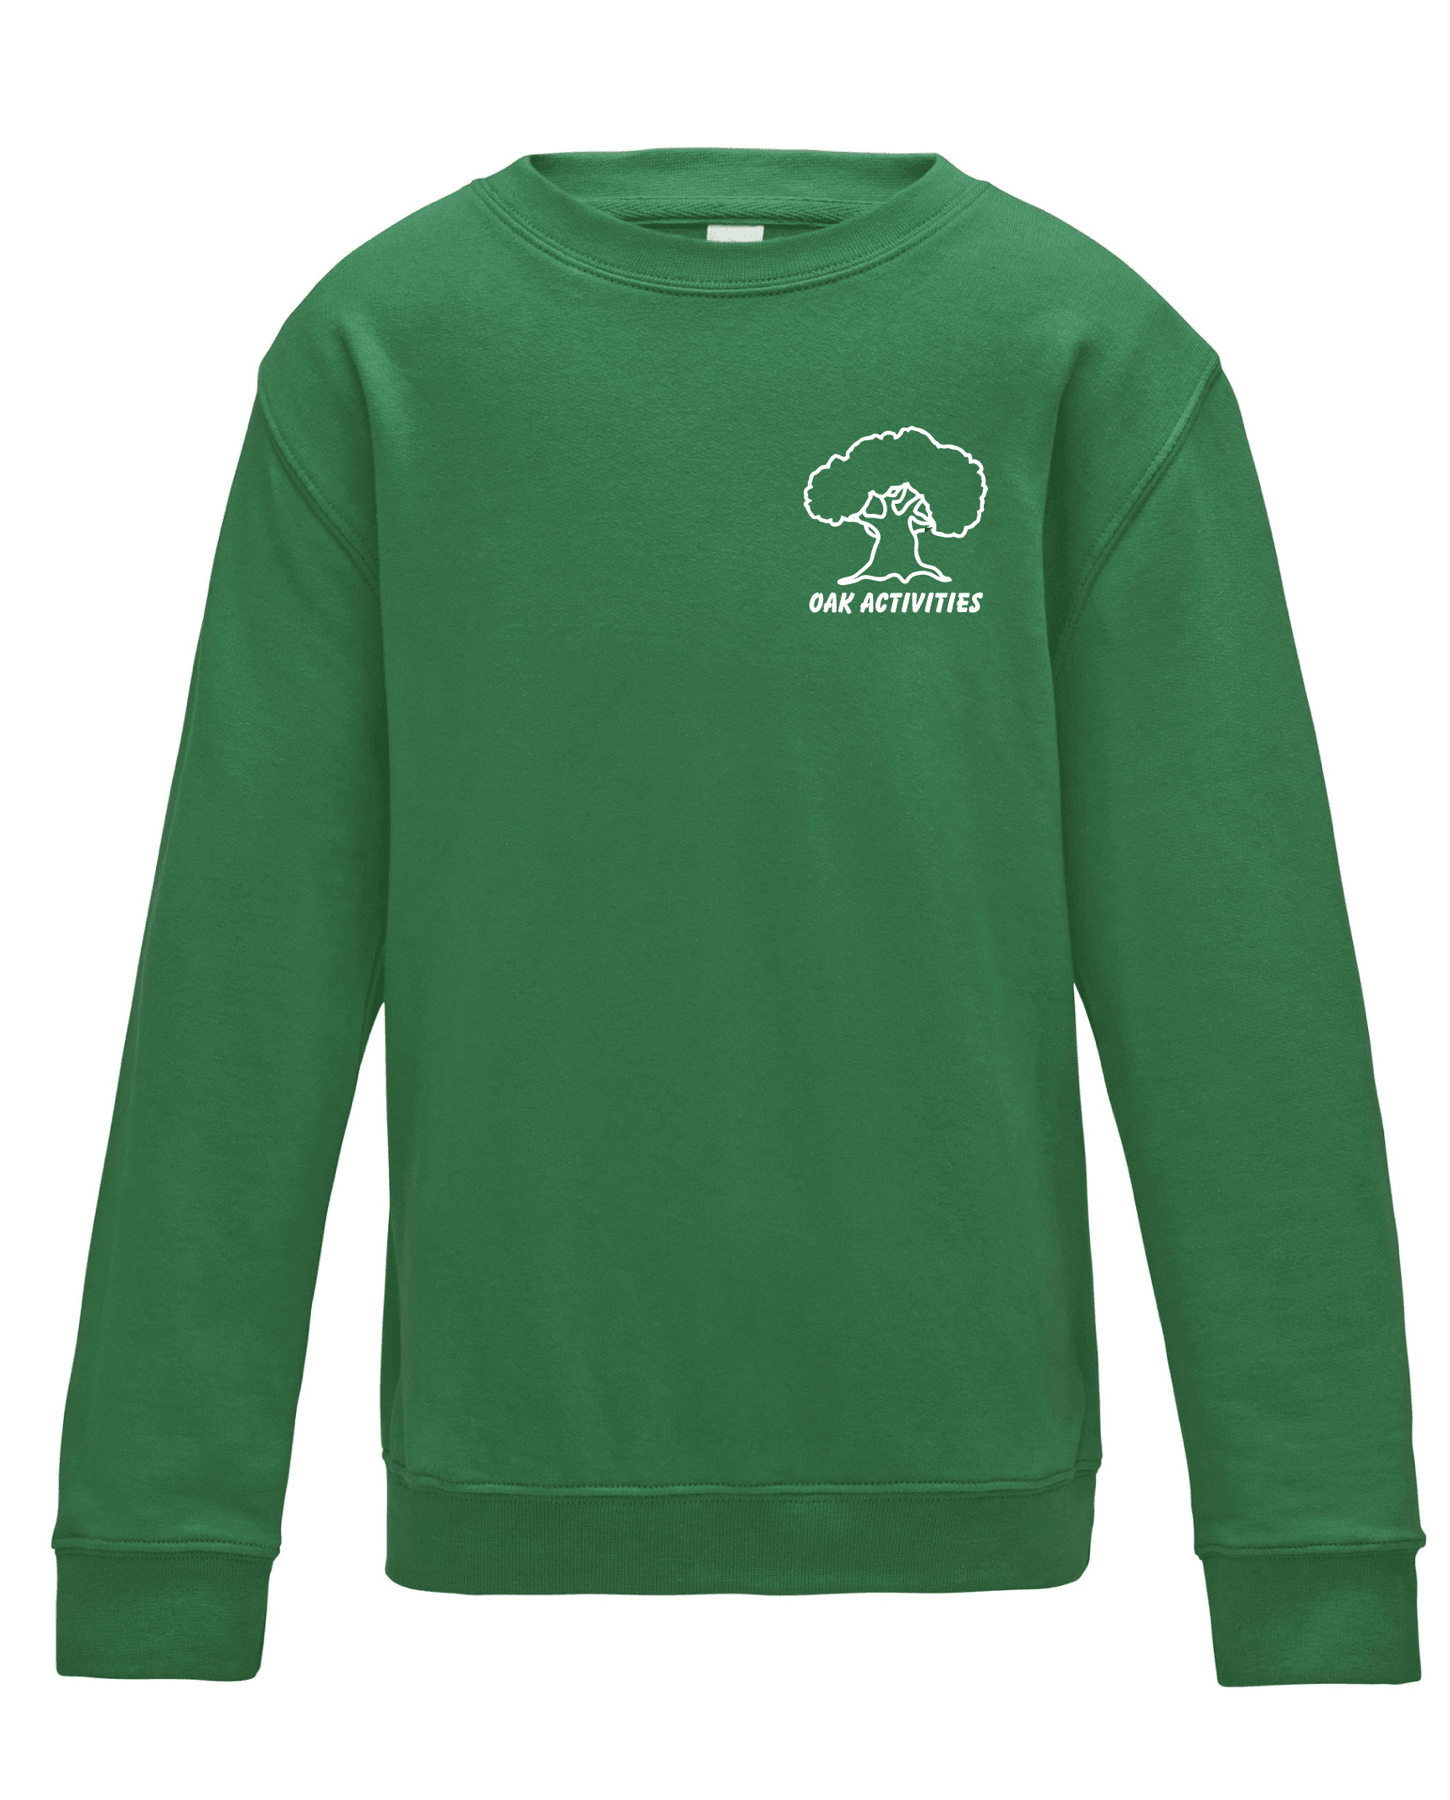 Oak Activities – Kids Sweatshirt (Green)